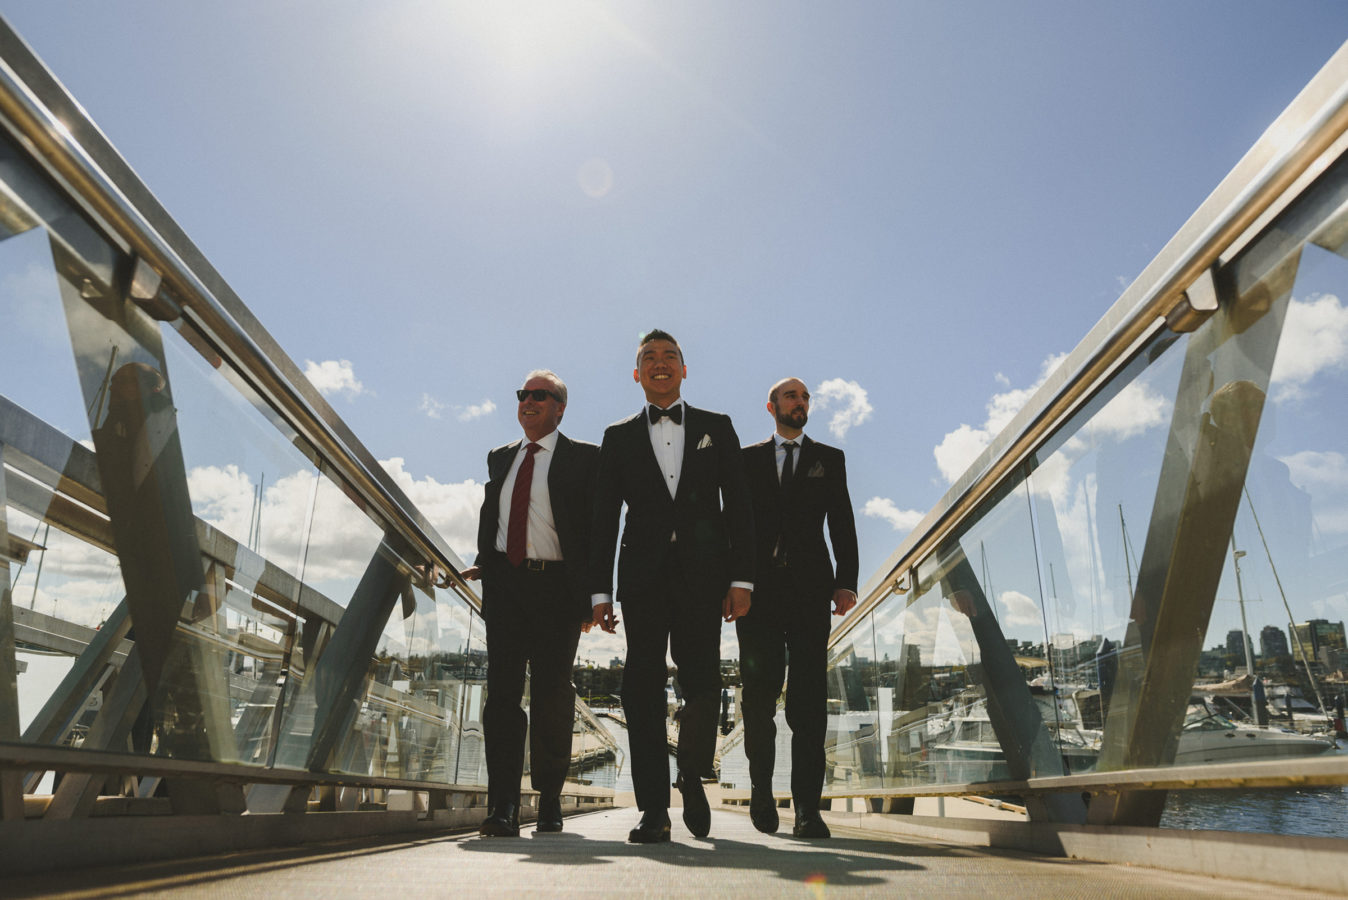 groom and two groomsmen walking up a dock with the sun & blue sky behind them